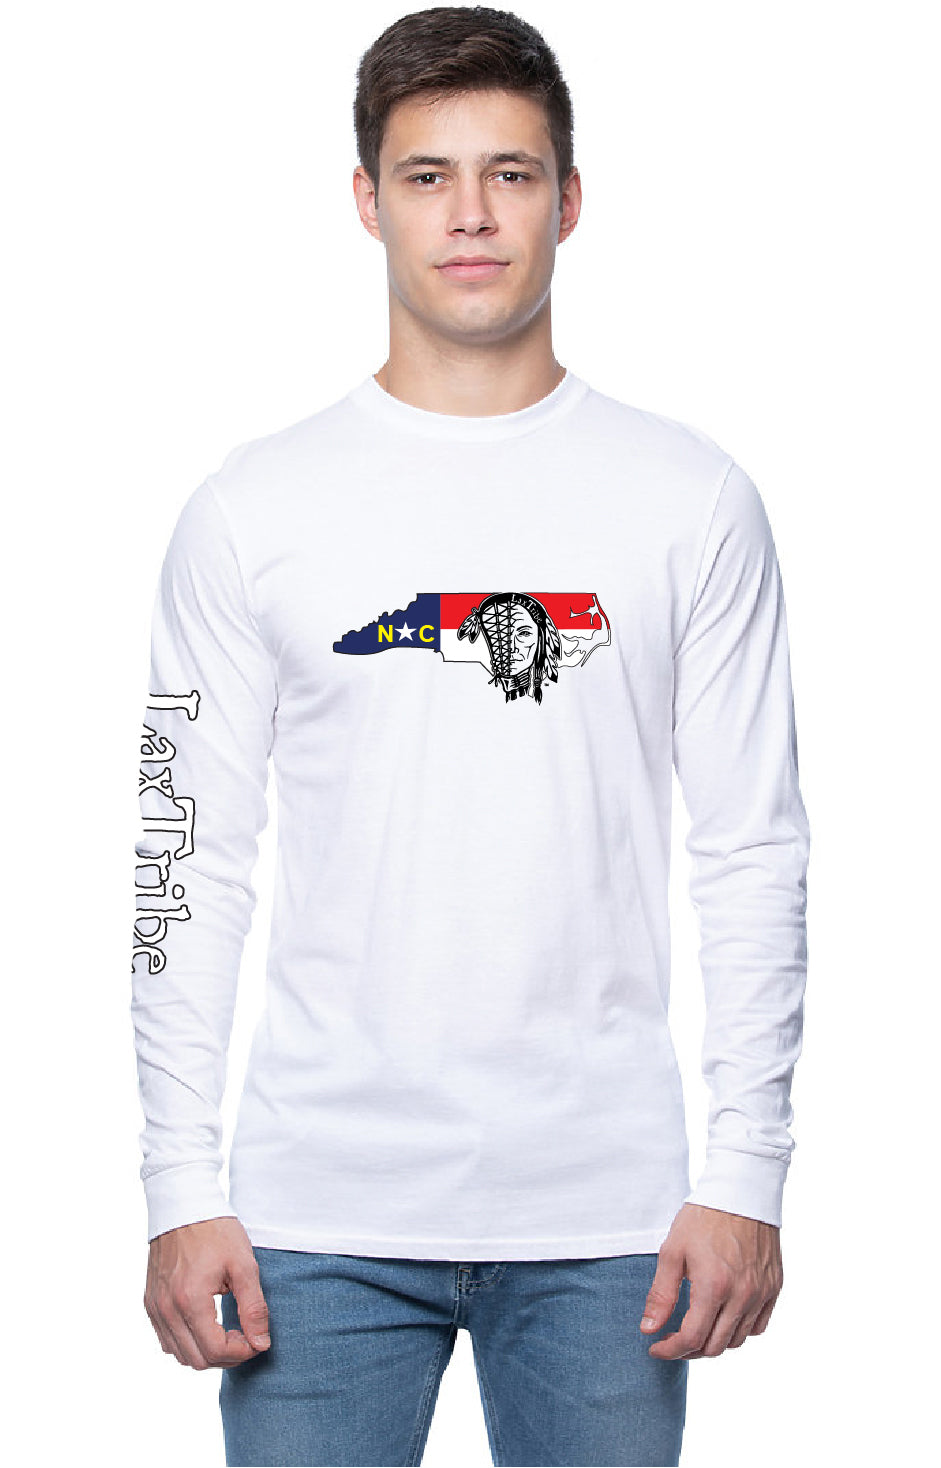 "T's - Long Sleeve Unisex - ""North Carolina"" design - 100% Cotton - Made in USA"